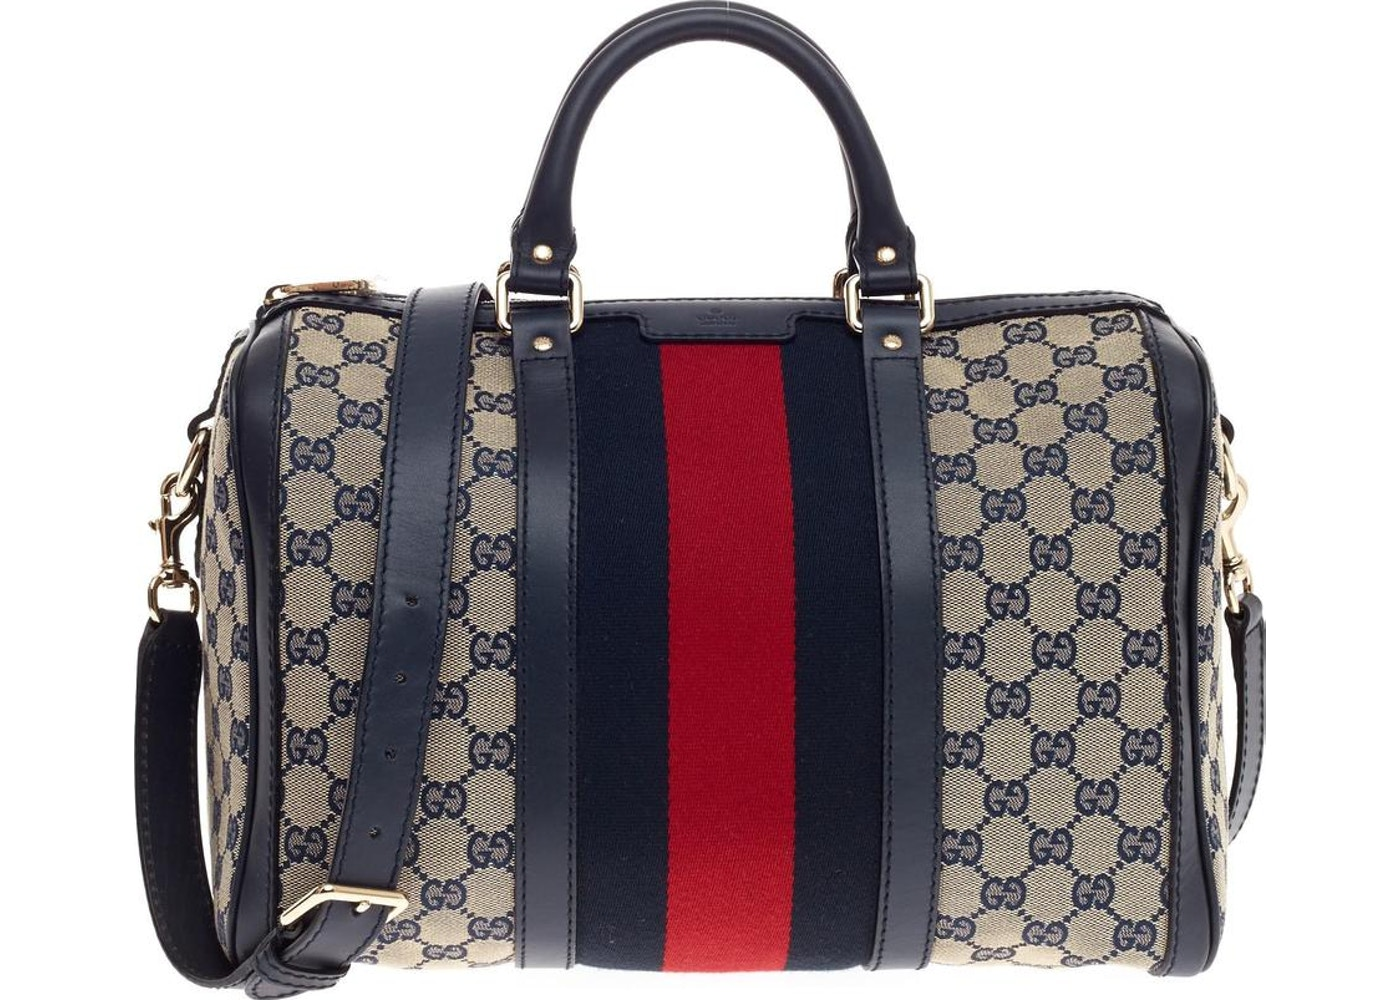 41d5379dd41c Gucci Boston Bag Vintage Web GG Web Stripes Medium Blue Red. GG Web Stripes  Medium Blue Red